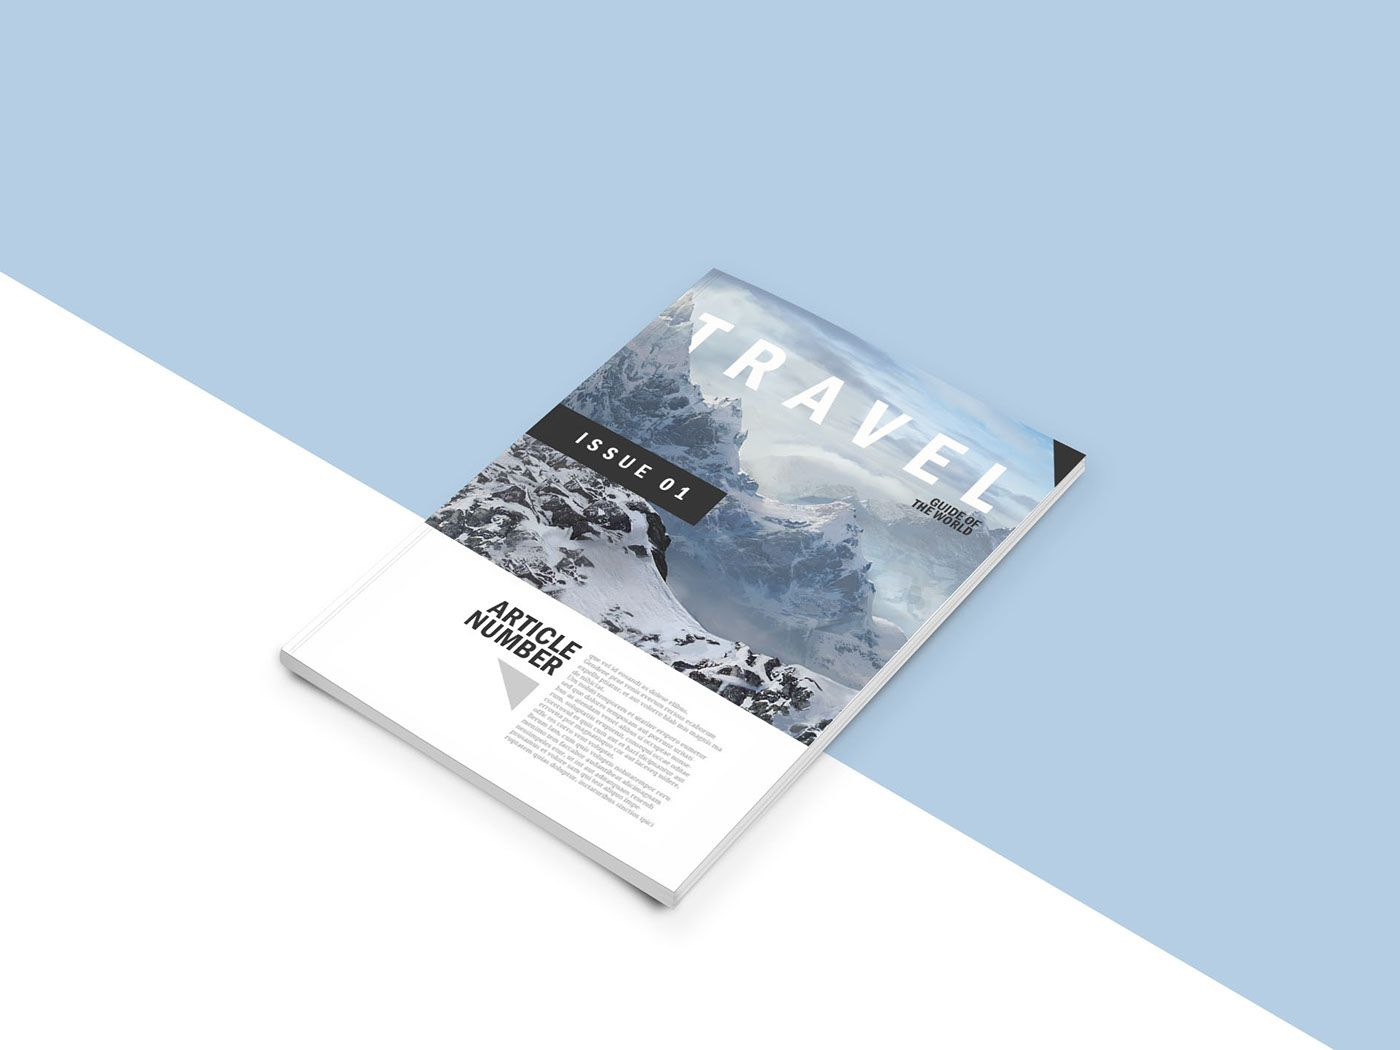 Free PSD mock up template for your magazine concepts